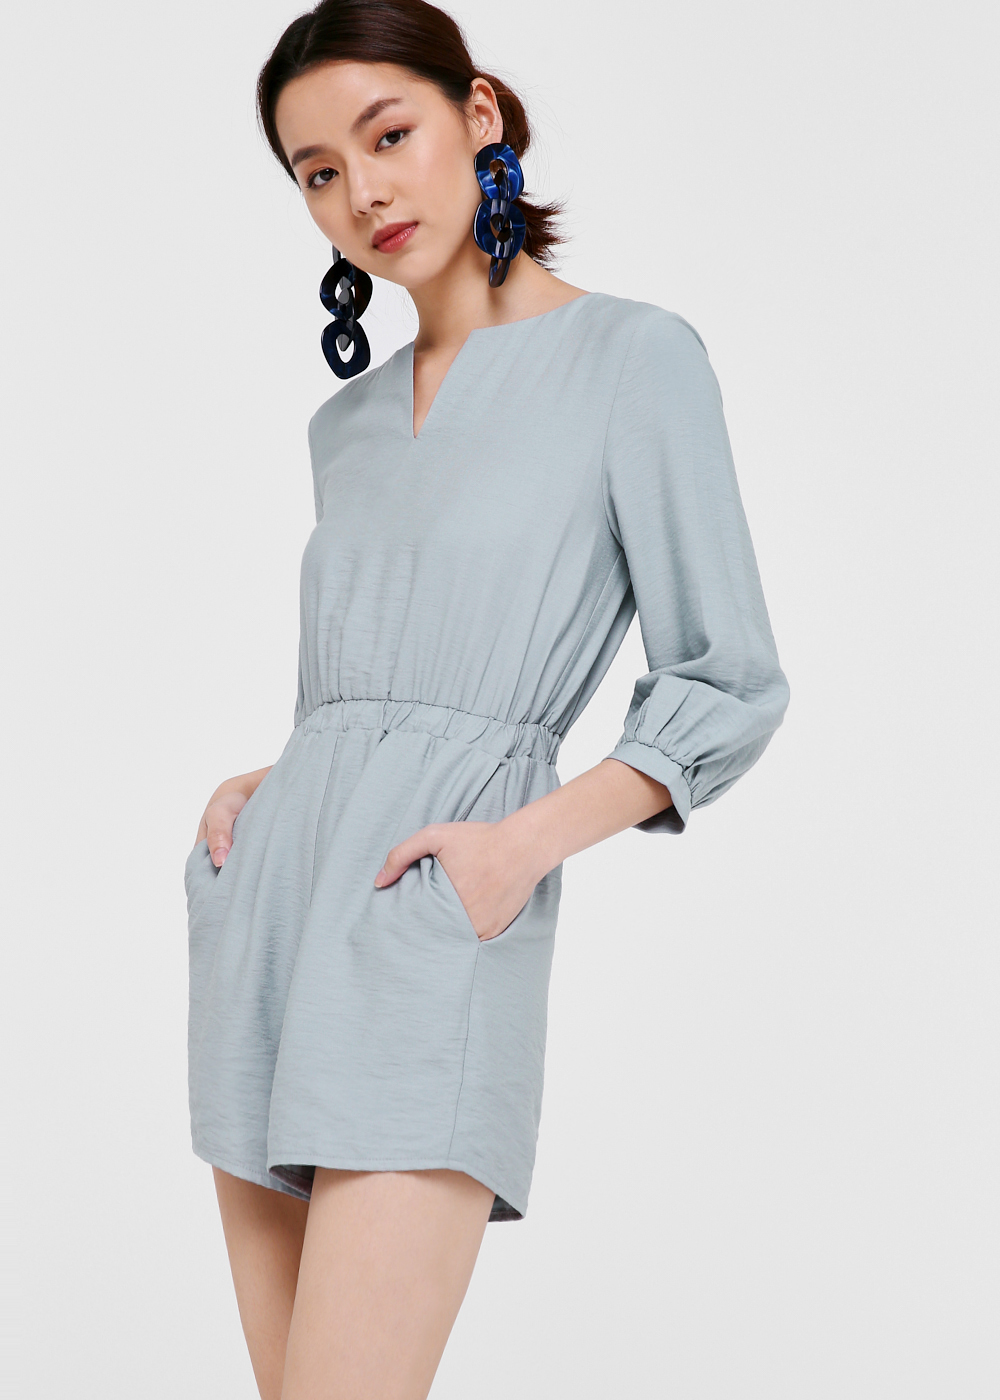 Devan Balloon Sleeve Romper